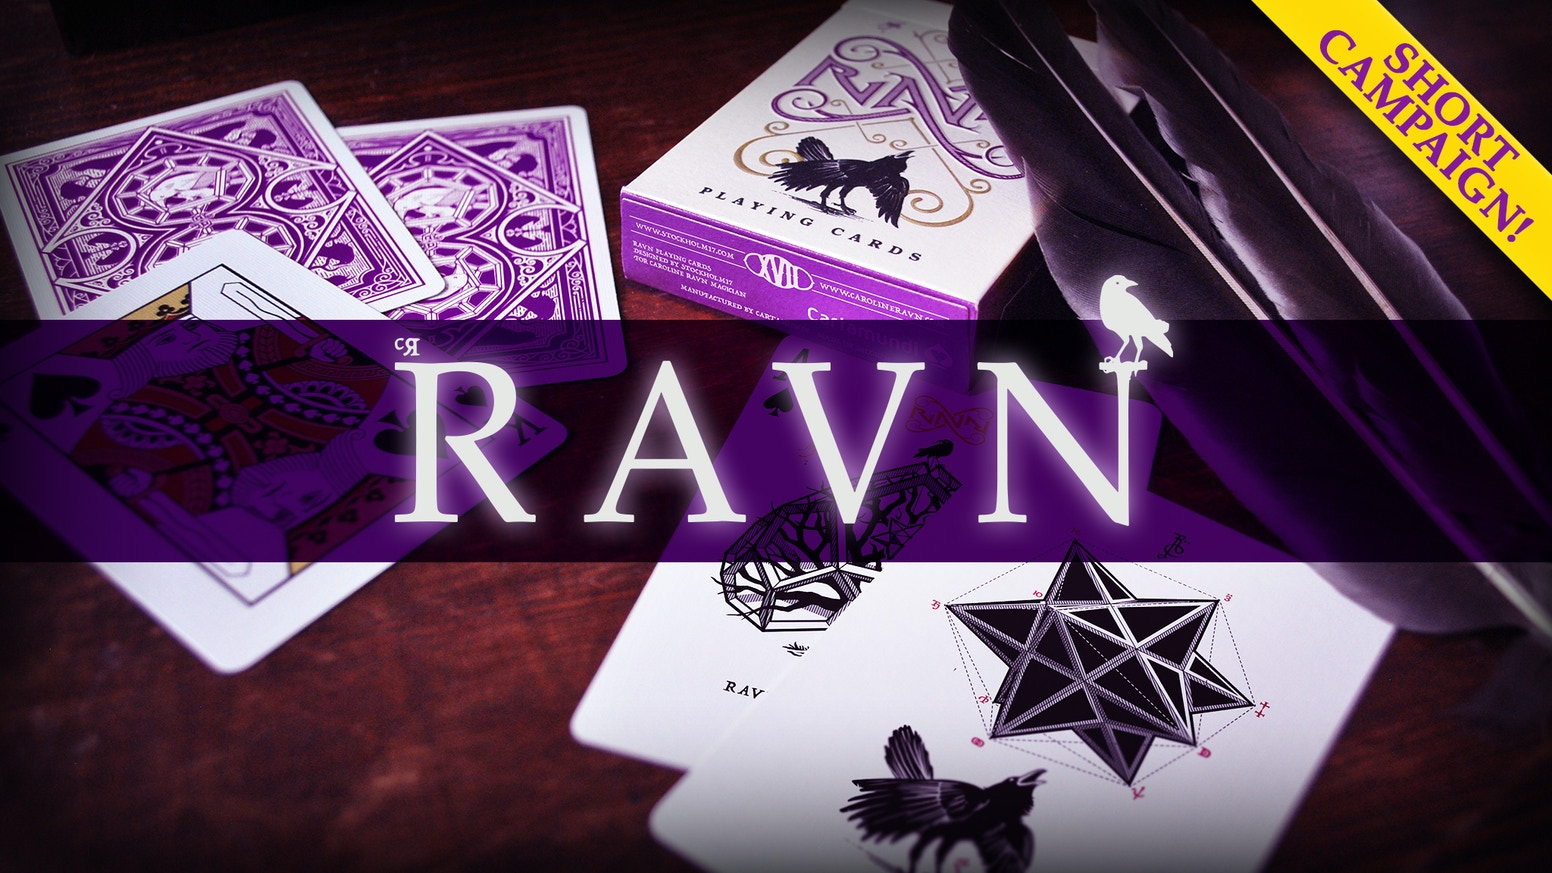 Ravn playing cards are back, in purple! Perfect for card tricks, cardistry, and poker. Printed with cardistry finish by Cartamundi.